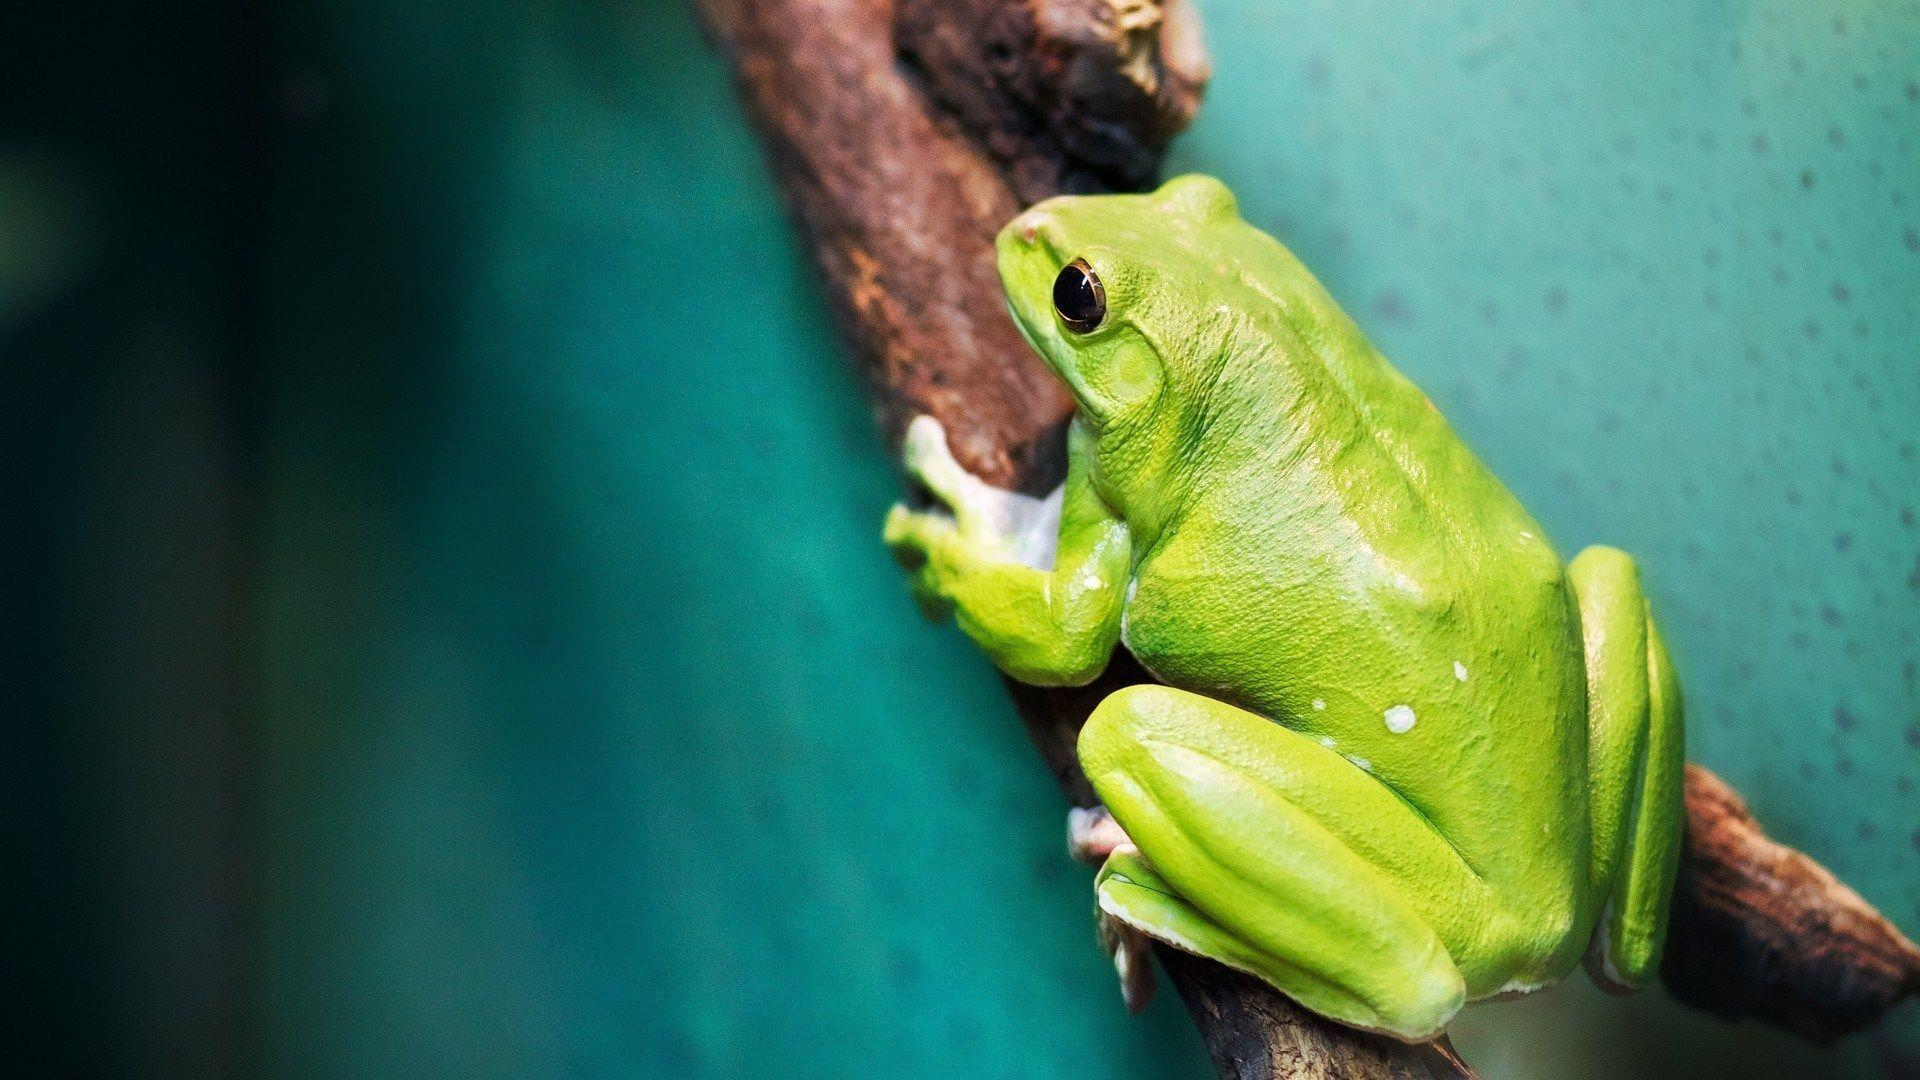 Frog Wallpapers 11924 1920x1080 px